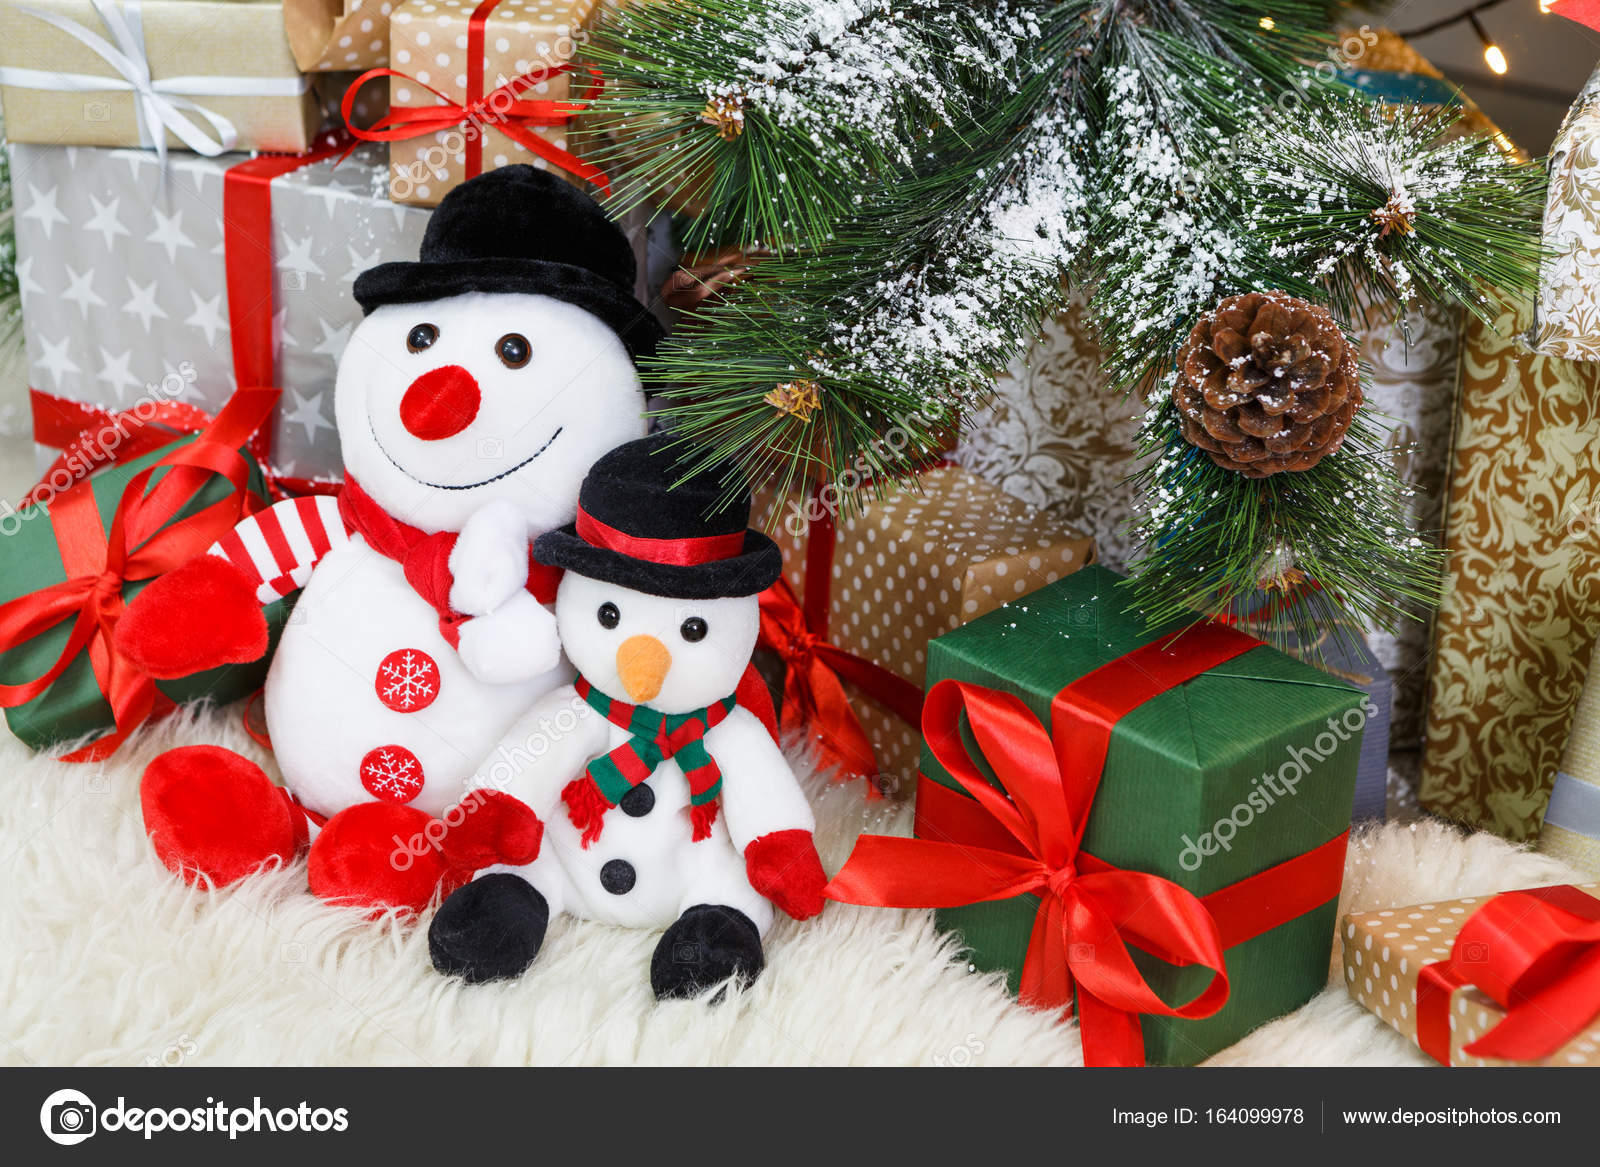 Snowman Presents Under Tree Cozy Christmas Background Toy